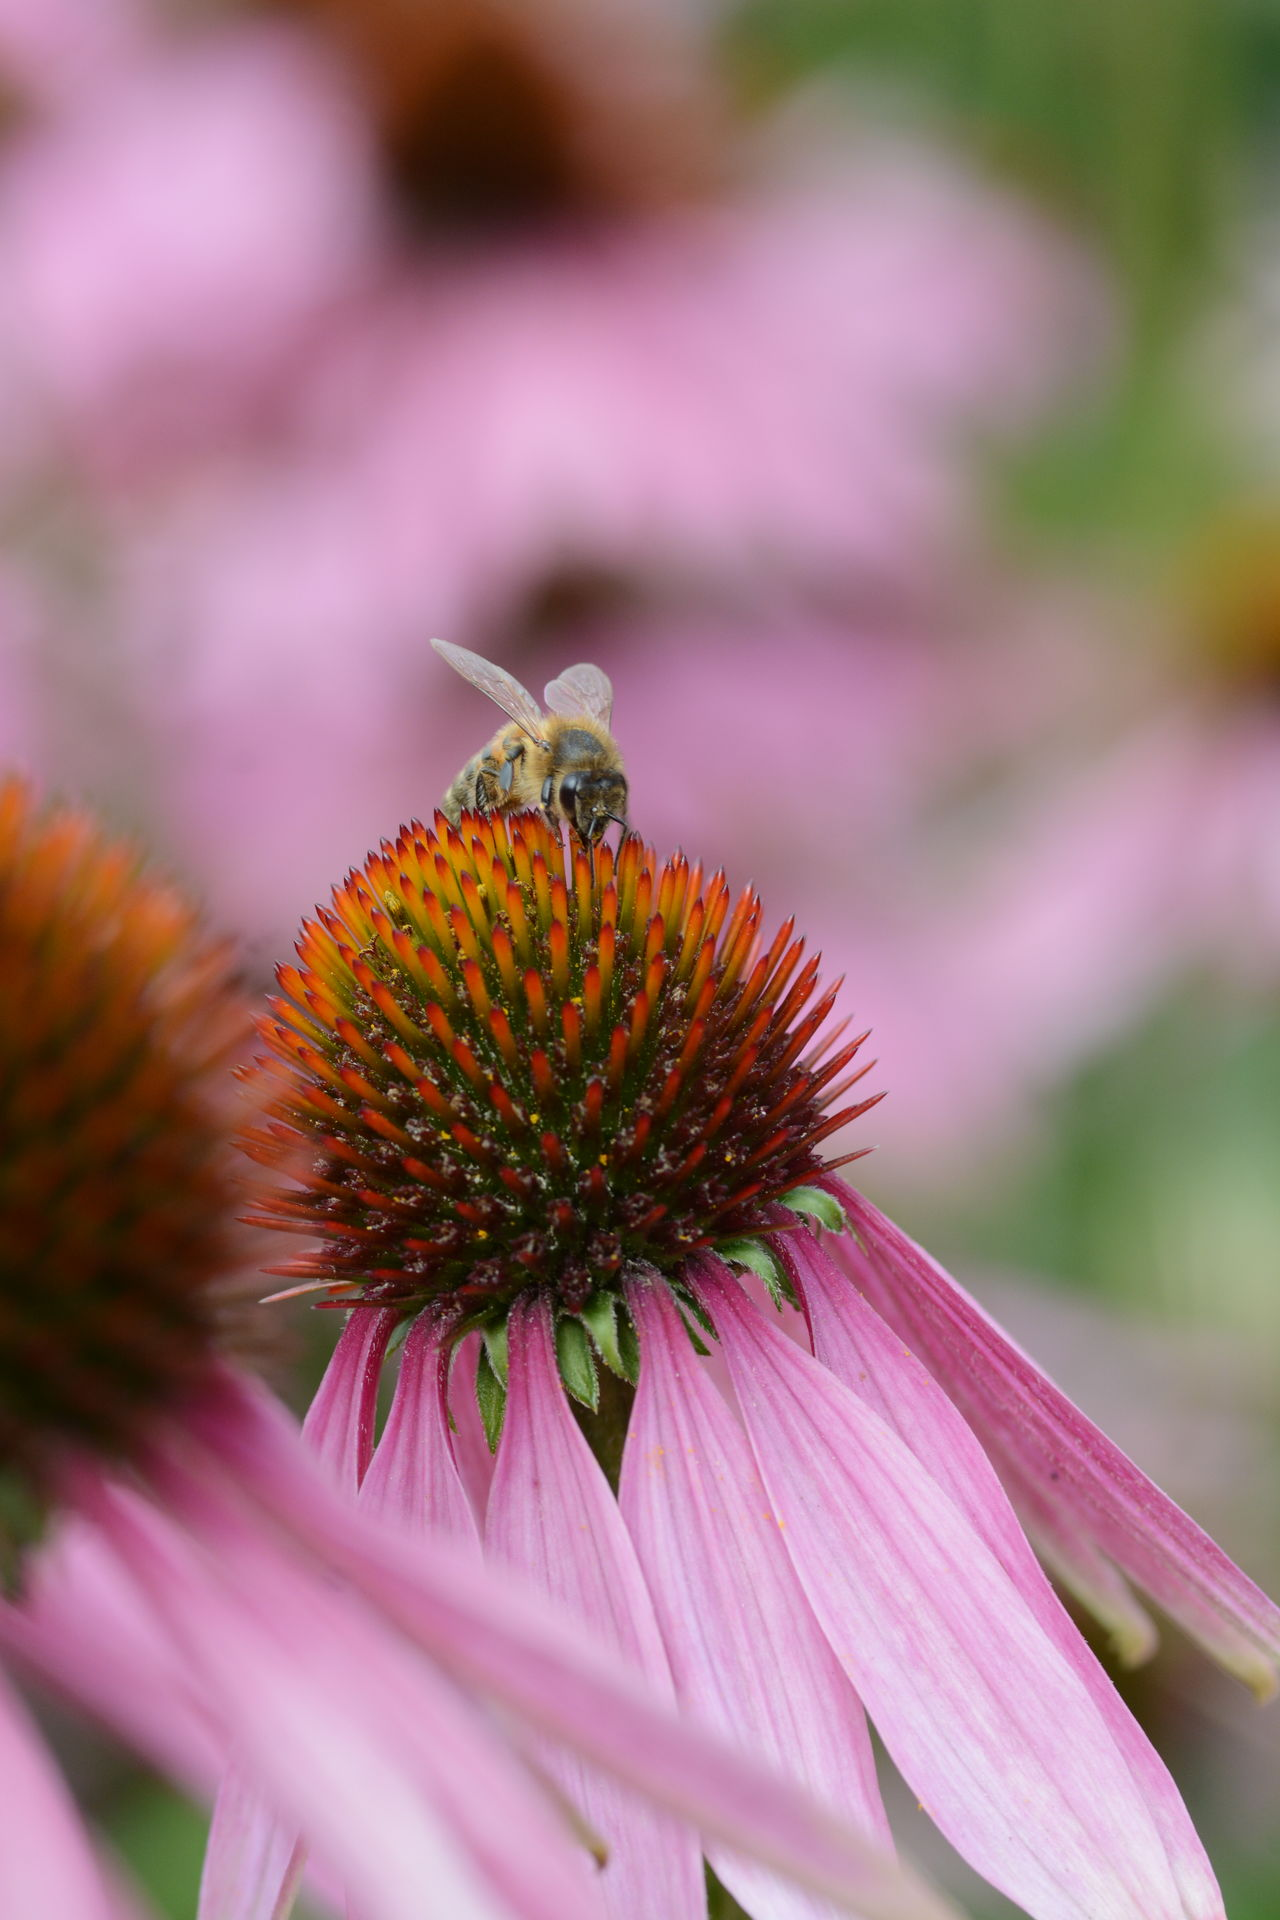 Bee Blooming Close-up Eastern Purple Coneflower Echinacea Purpurea Flower Flower Head Insect Medicinal Plant Nature Petal Pollen Pollination